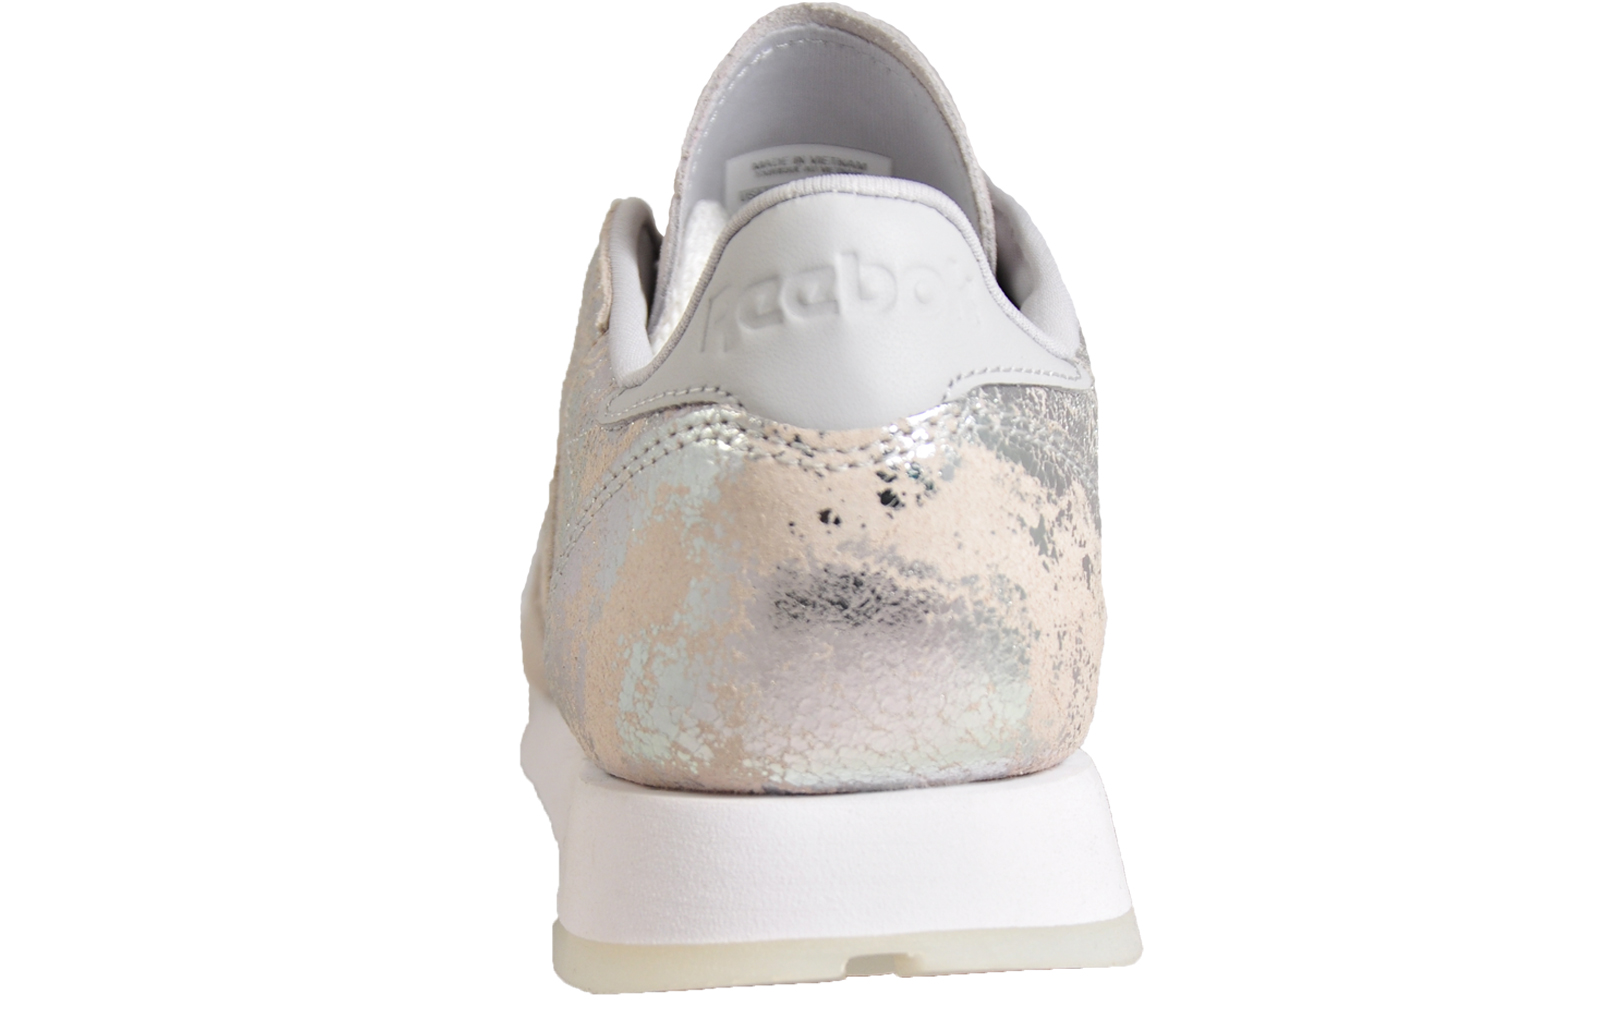 b8884796841c6f Reebok Classic CL Leather Hype Women s Girls Casual Retro Fashion Trainers  Silver